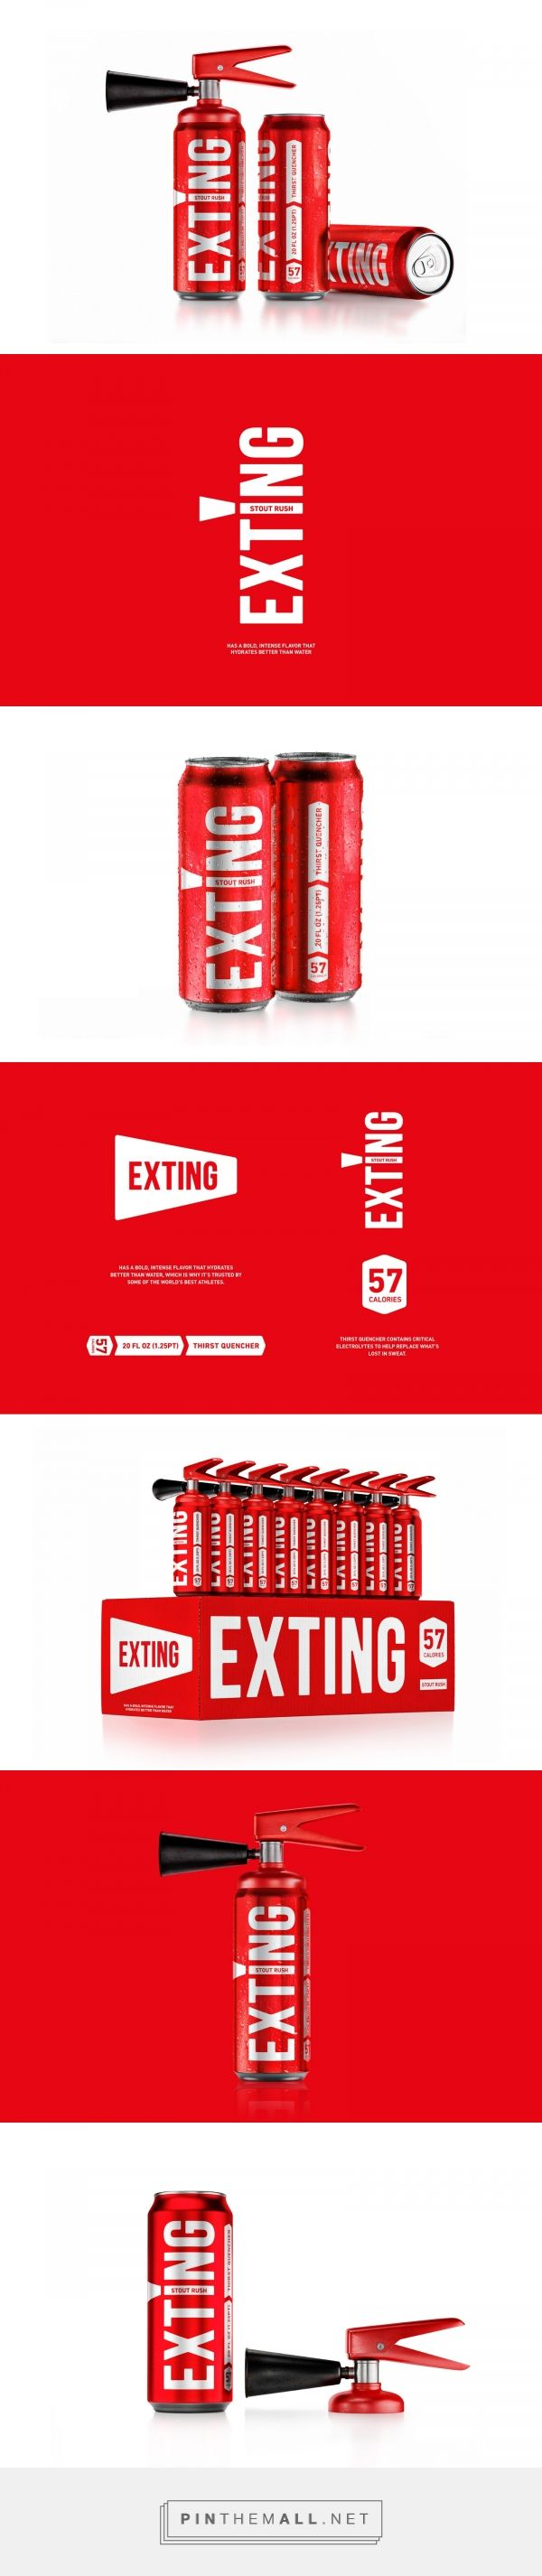 Exting energy drink packaging design by Reynolds and Reyner - http://www.packagingoftheworld.com/2018/01/exting.html